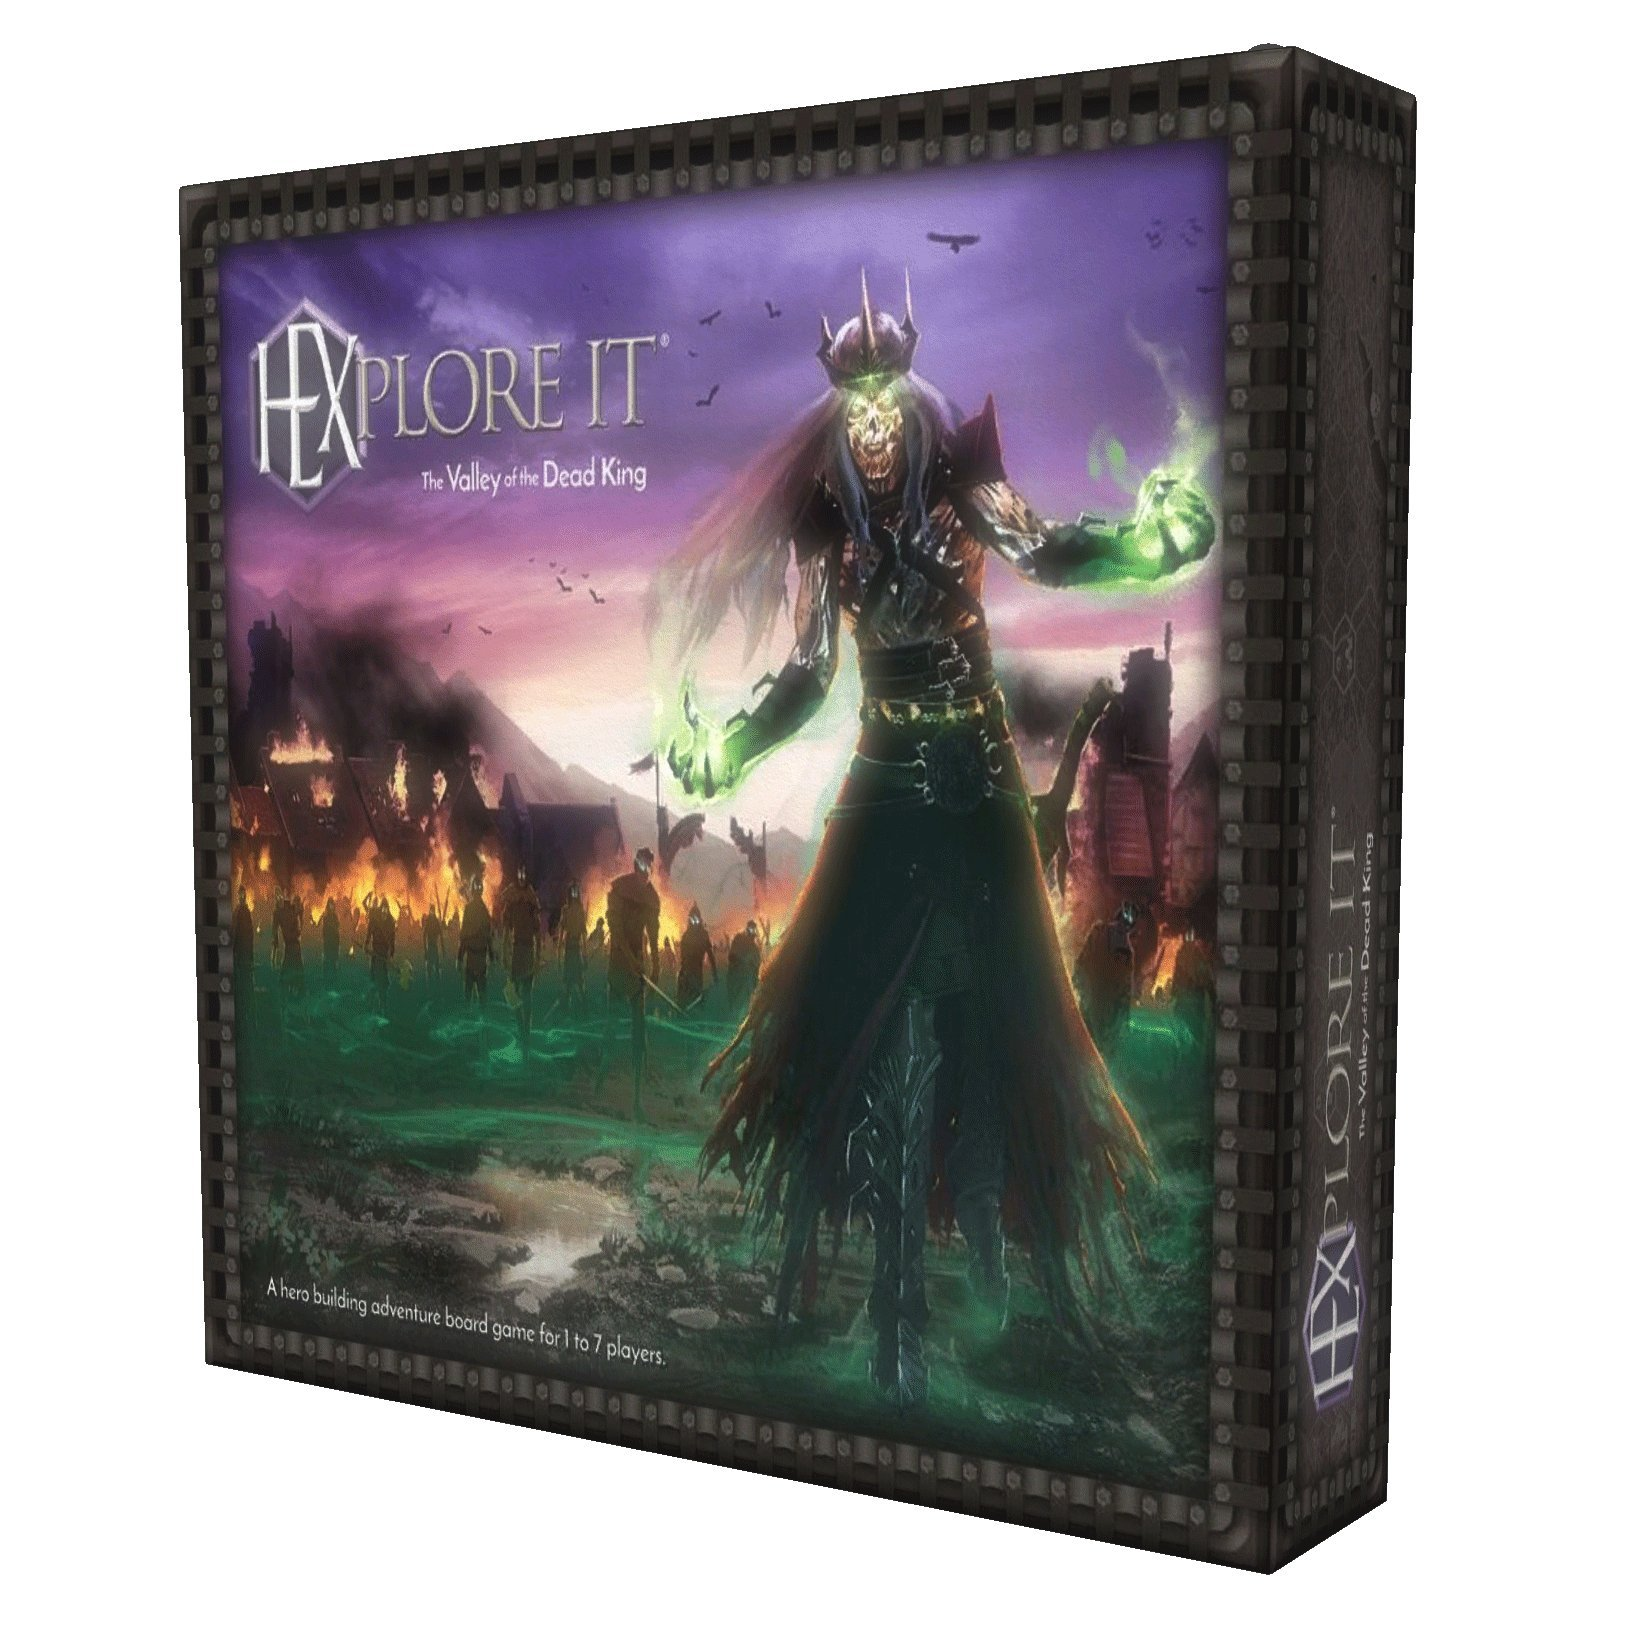 HEXplore It: The Valley of the Dead King Board Game